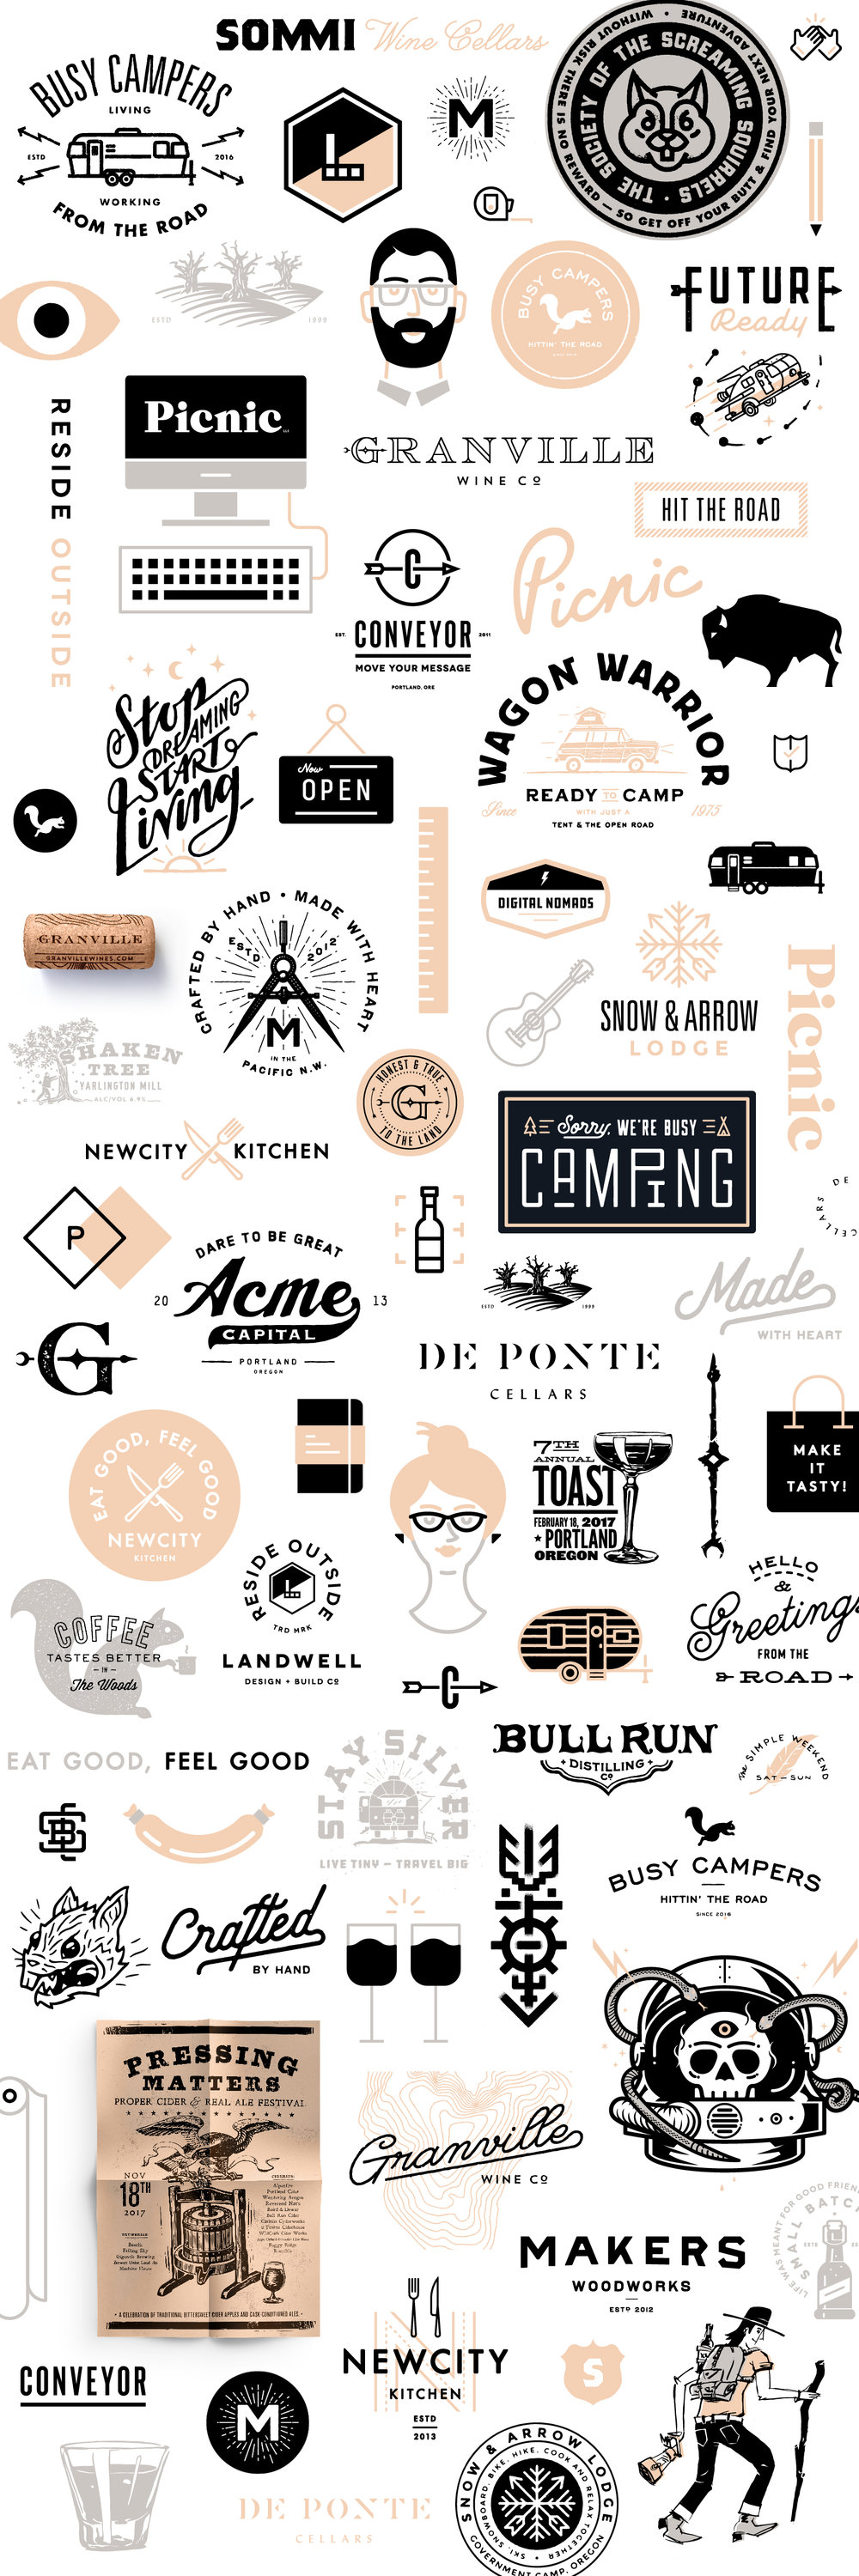 picnic_logos_marks_collage_tall_2017_01-01.jpg